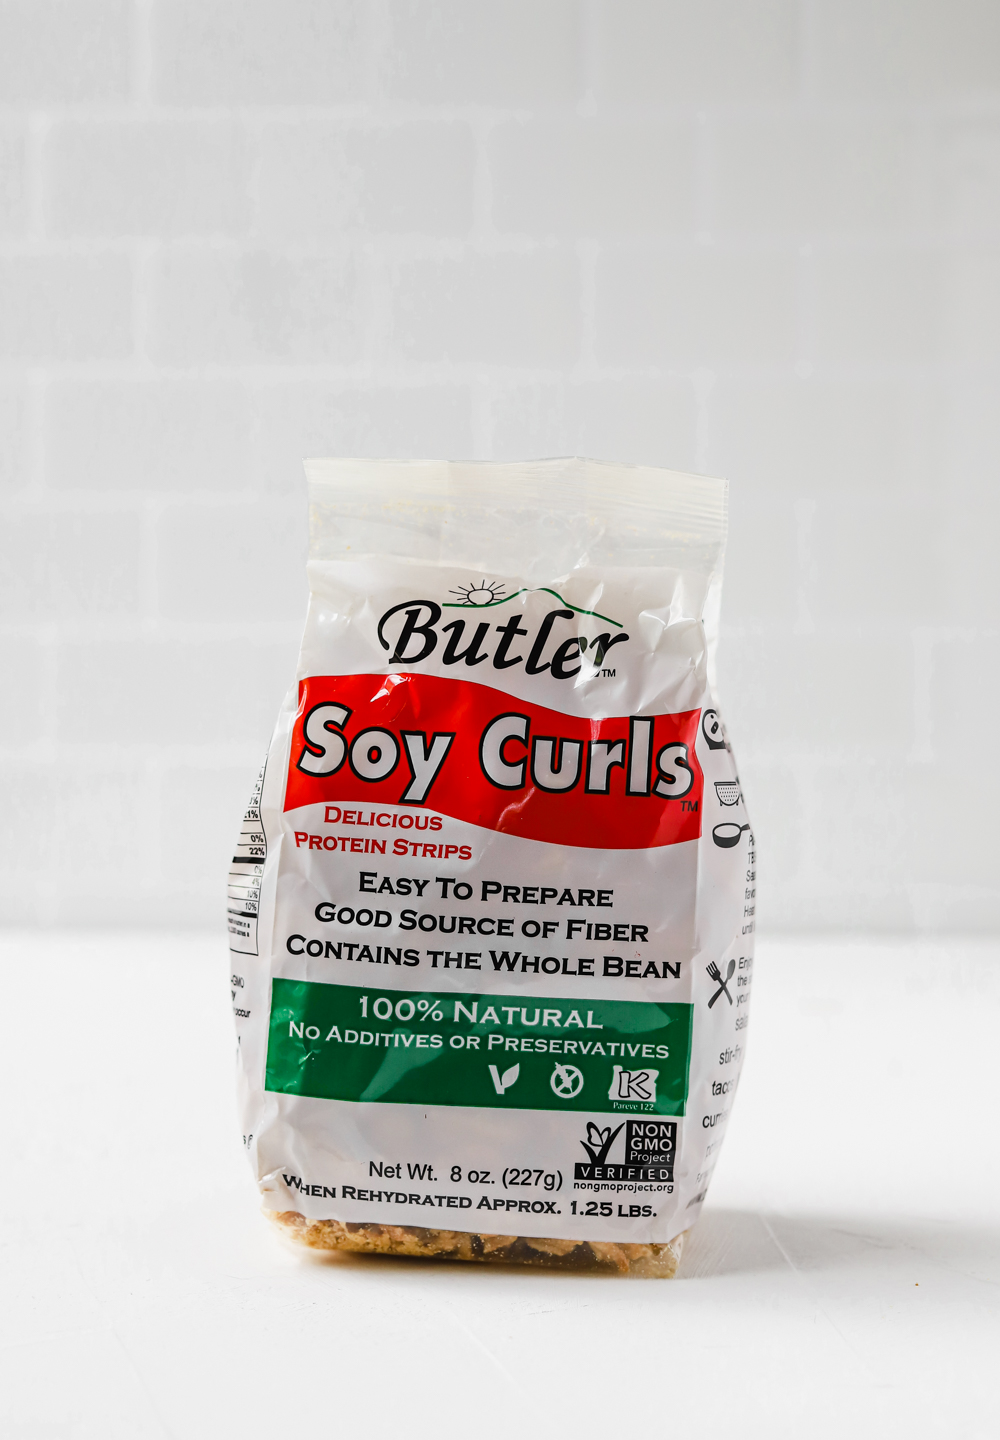 A bag of Butler Food's soy curls on a white countertop.